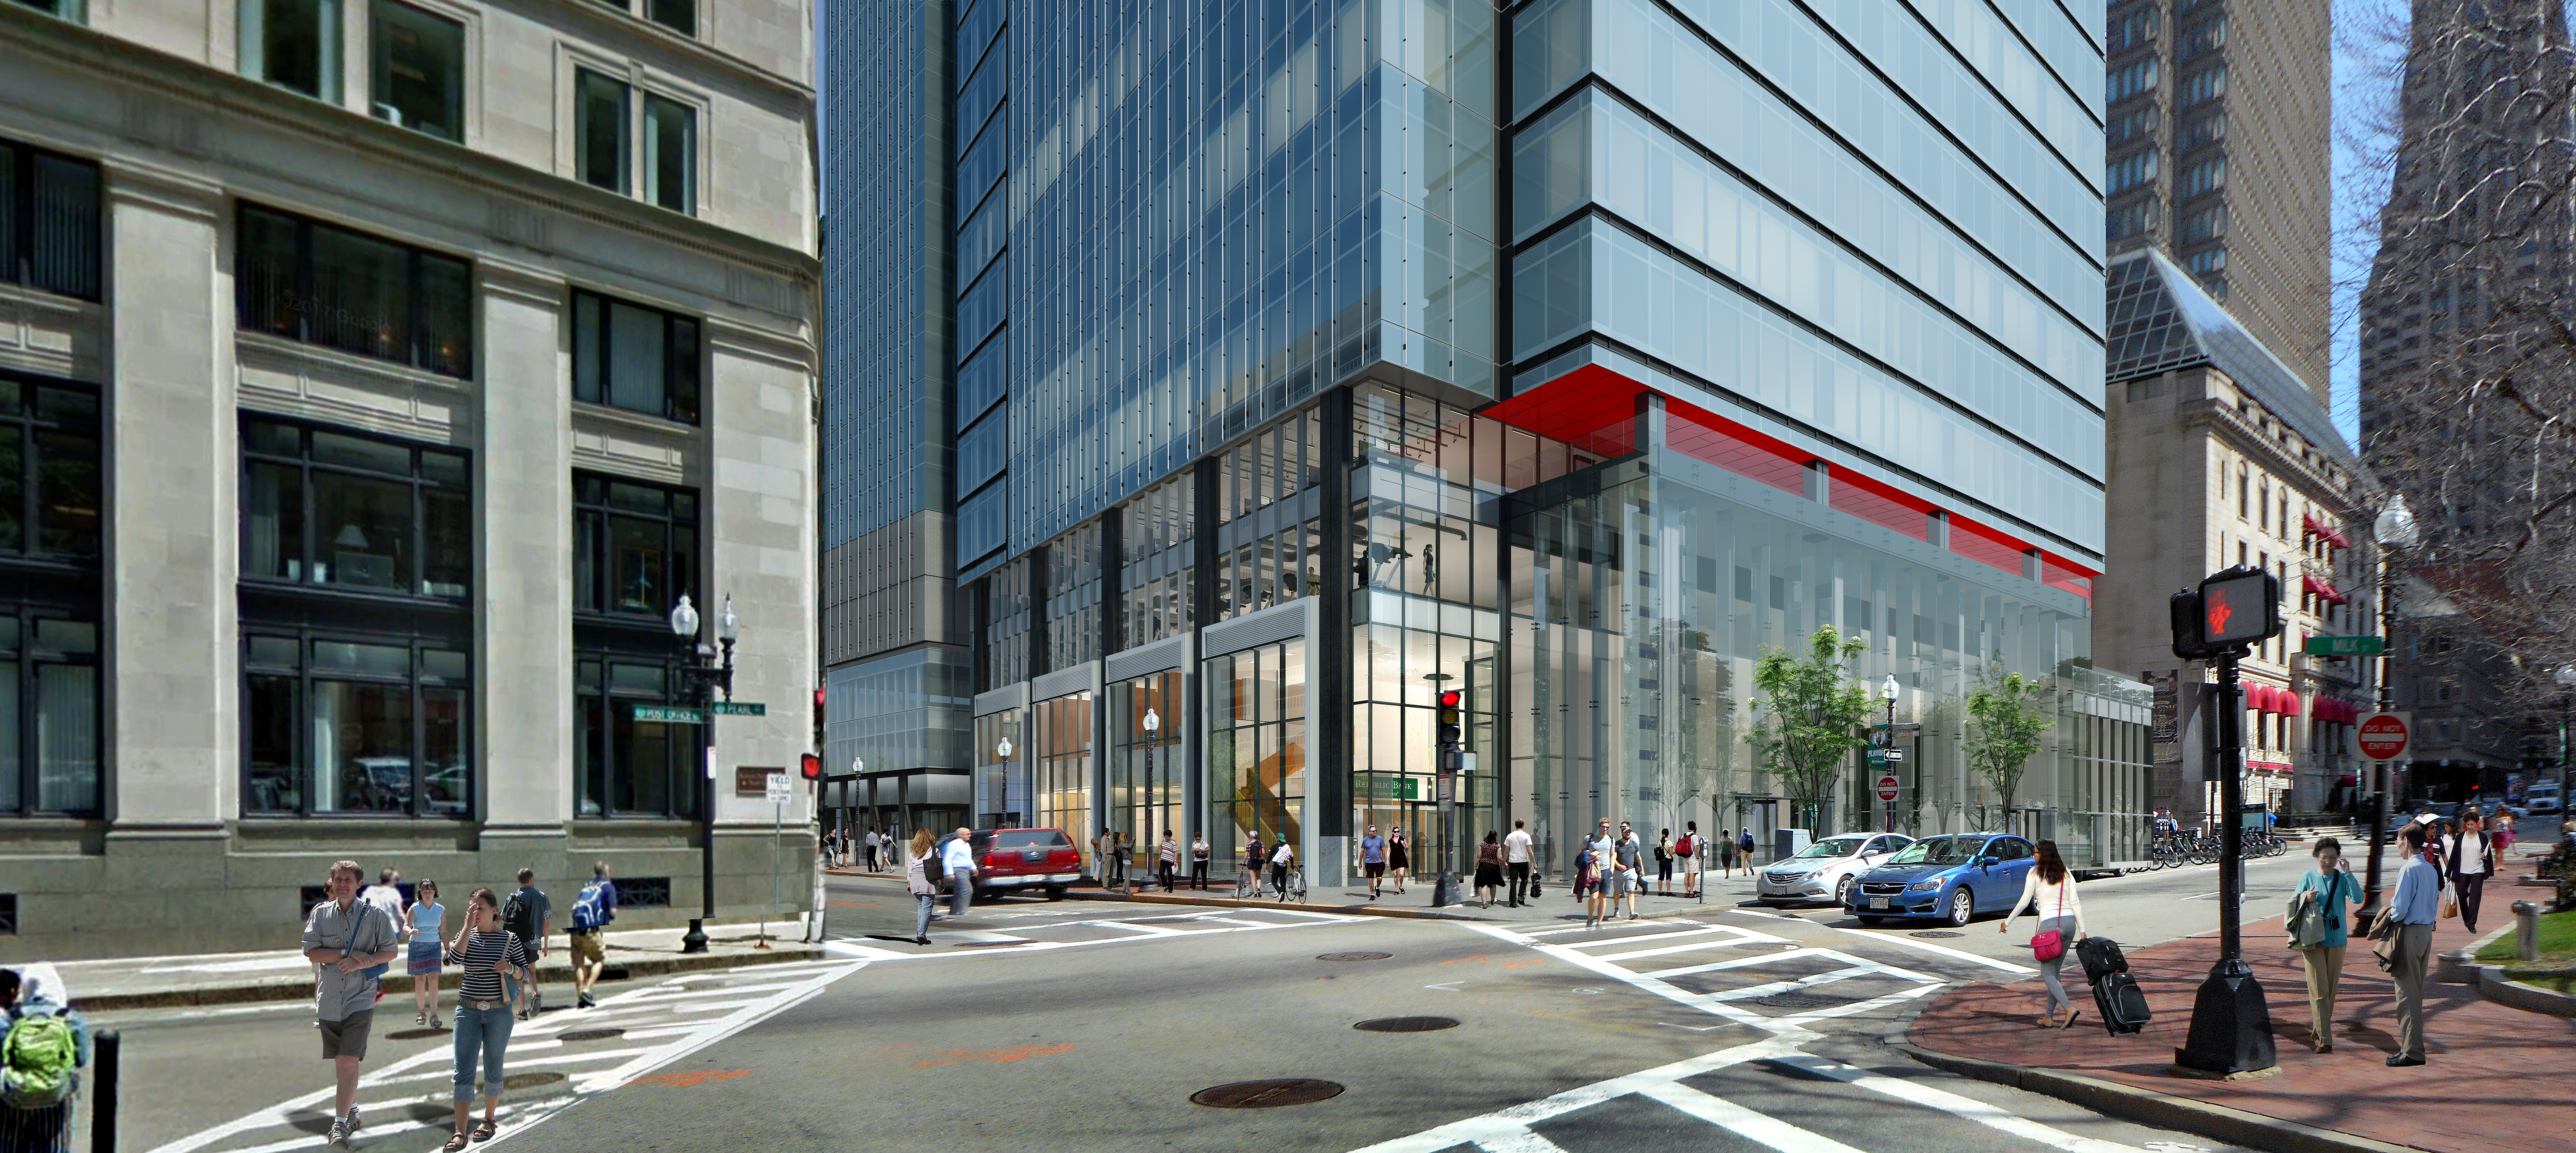 A rendering of a glassy office tower meeting a busy street and sidewalk.